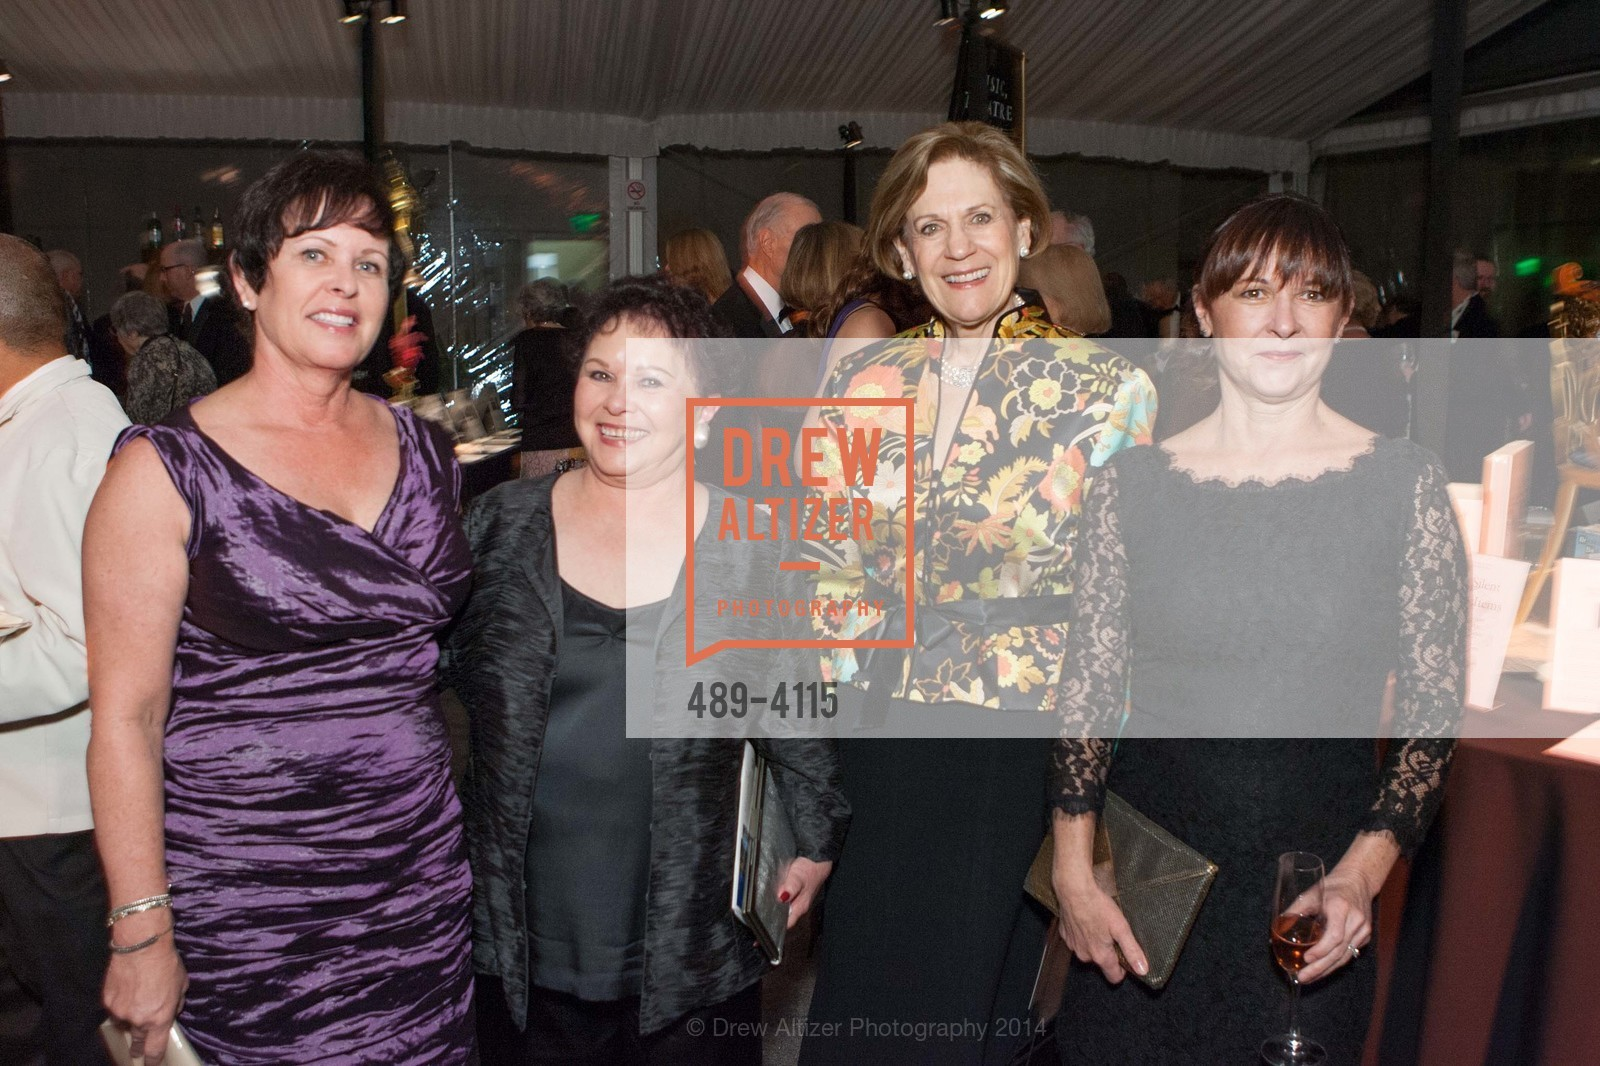 Carrie Williams, Donna Williams, Debbie Epstein, Cami Forhan, Photo #489-4115